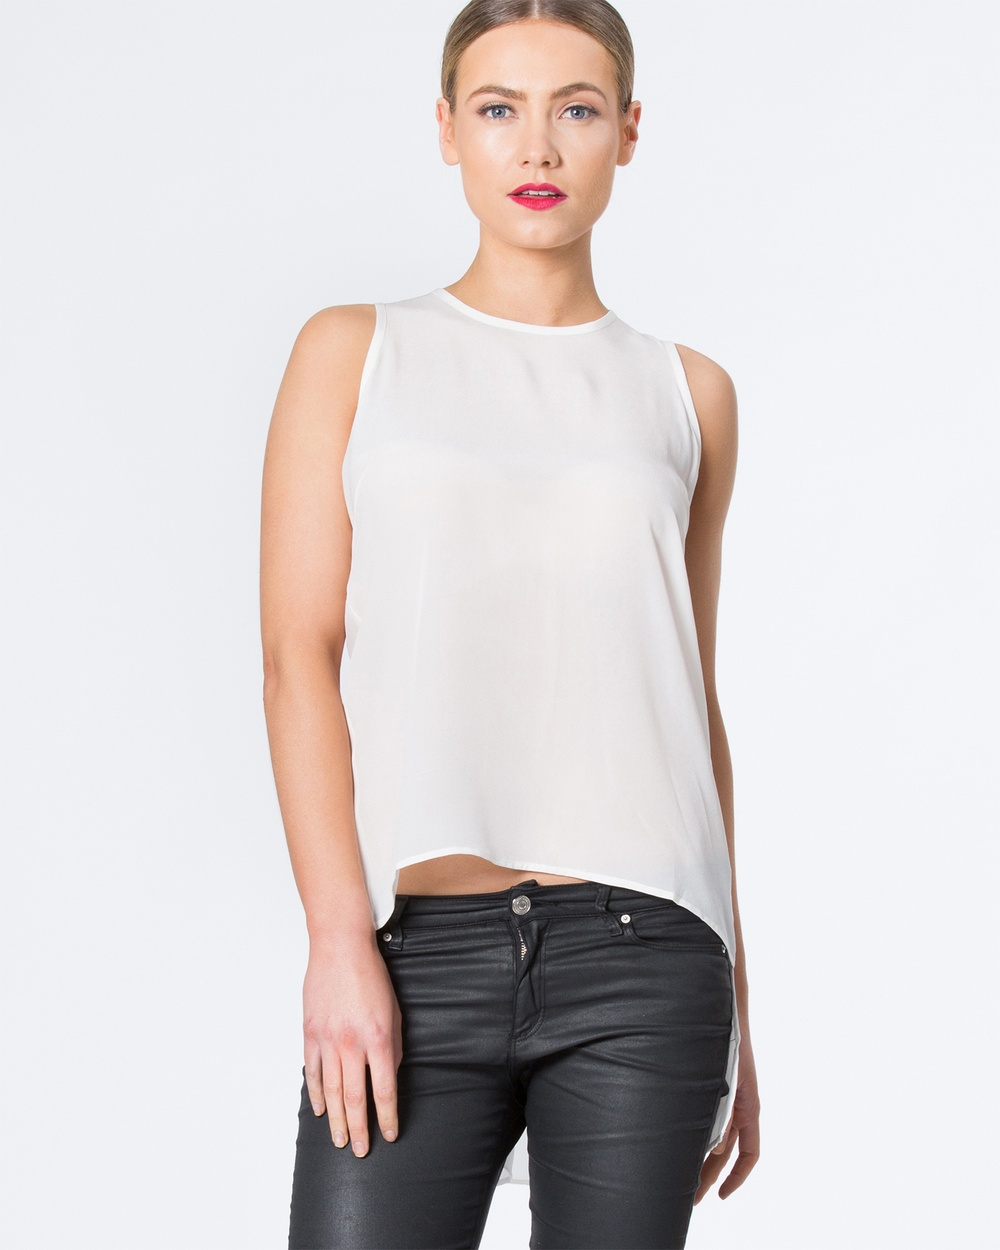 SIYONA Back Draped Silk Top Tops Cream Back Draped Silk Top